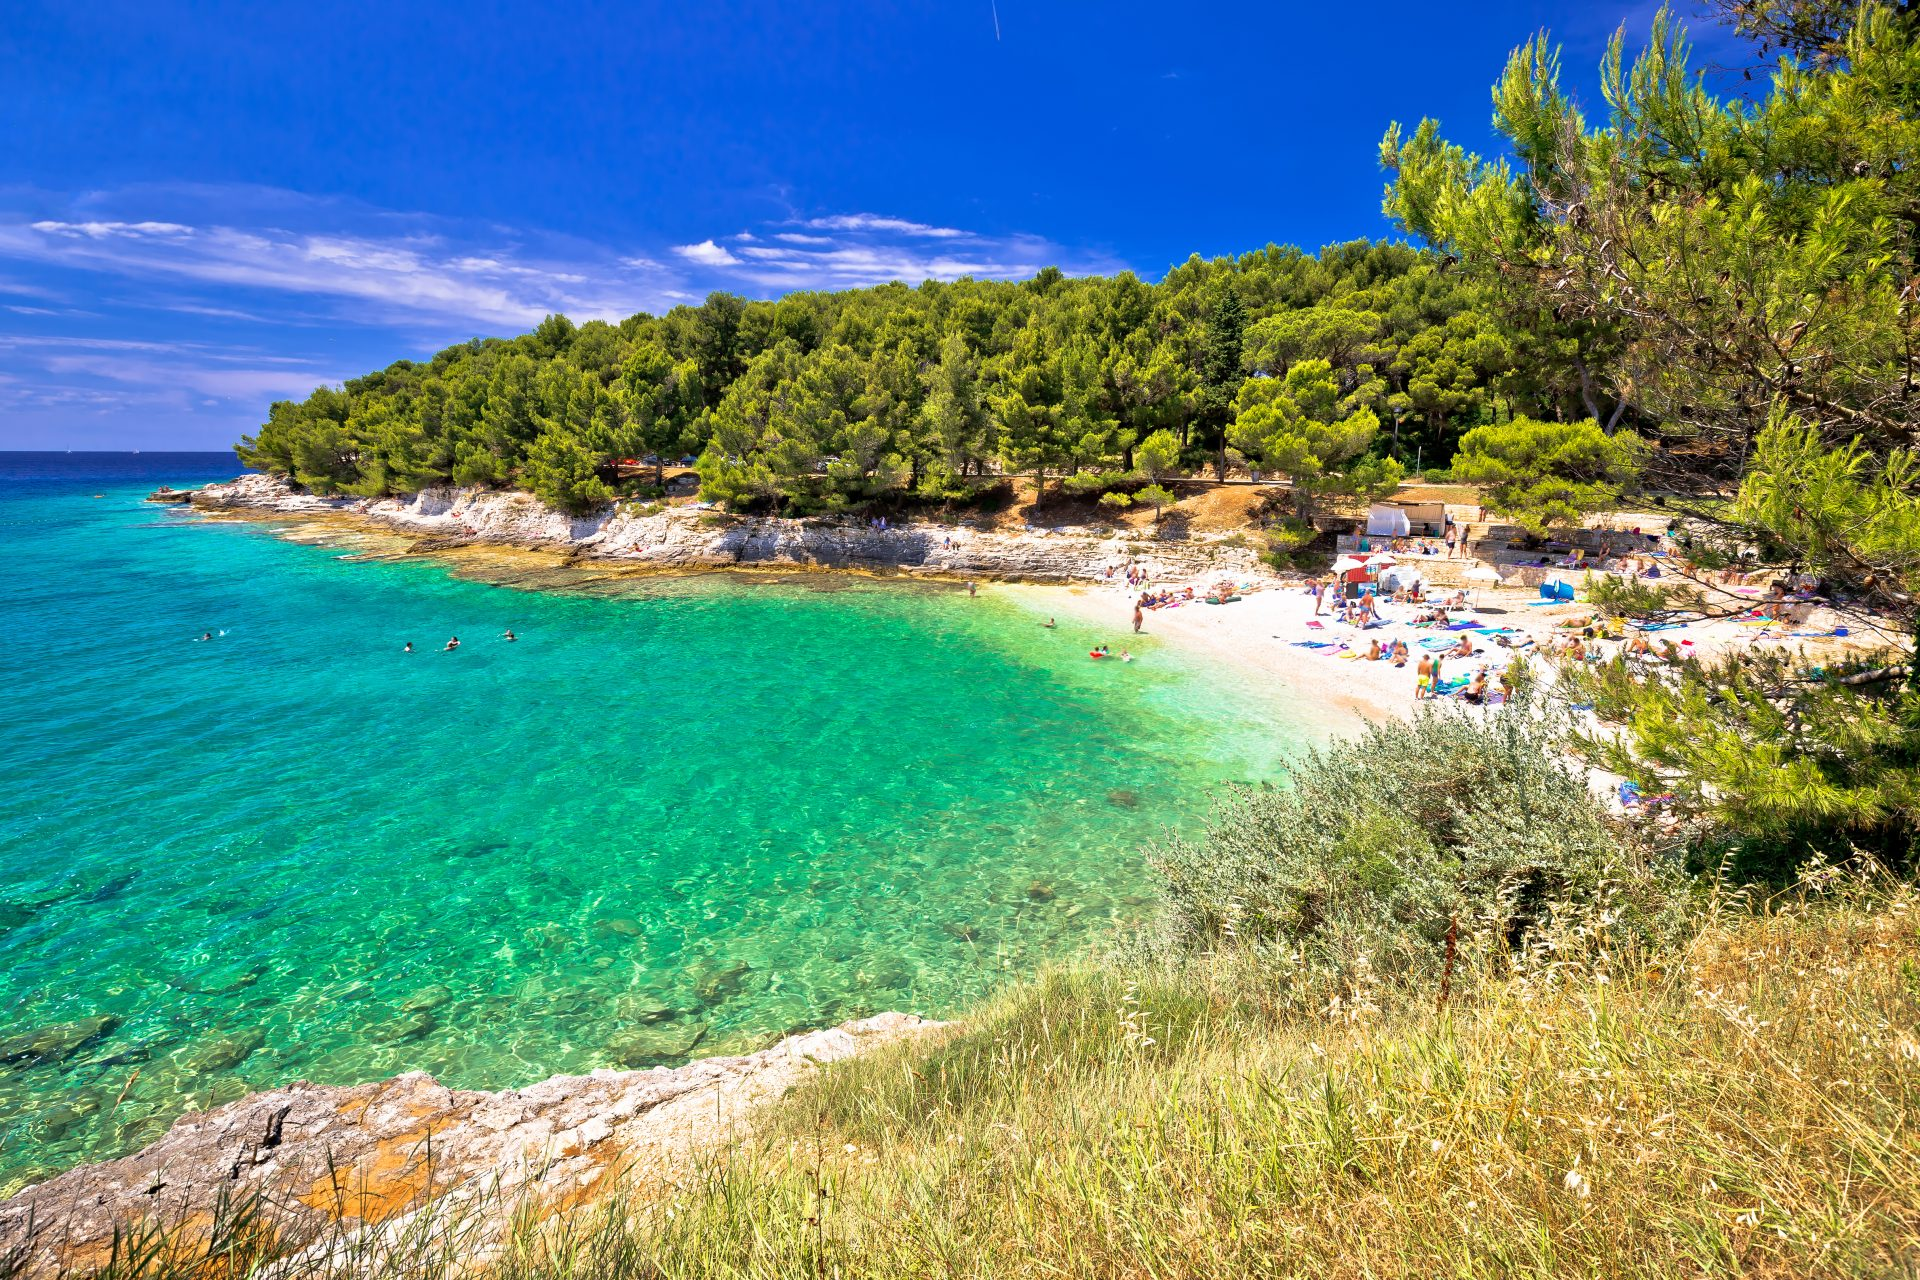 Beach near Pula